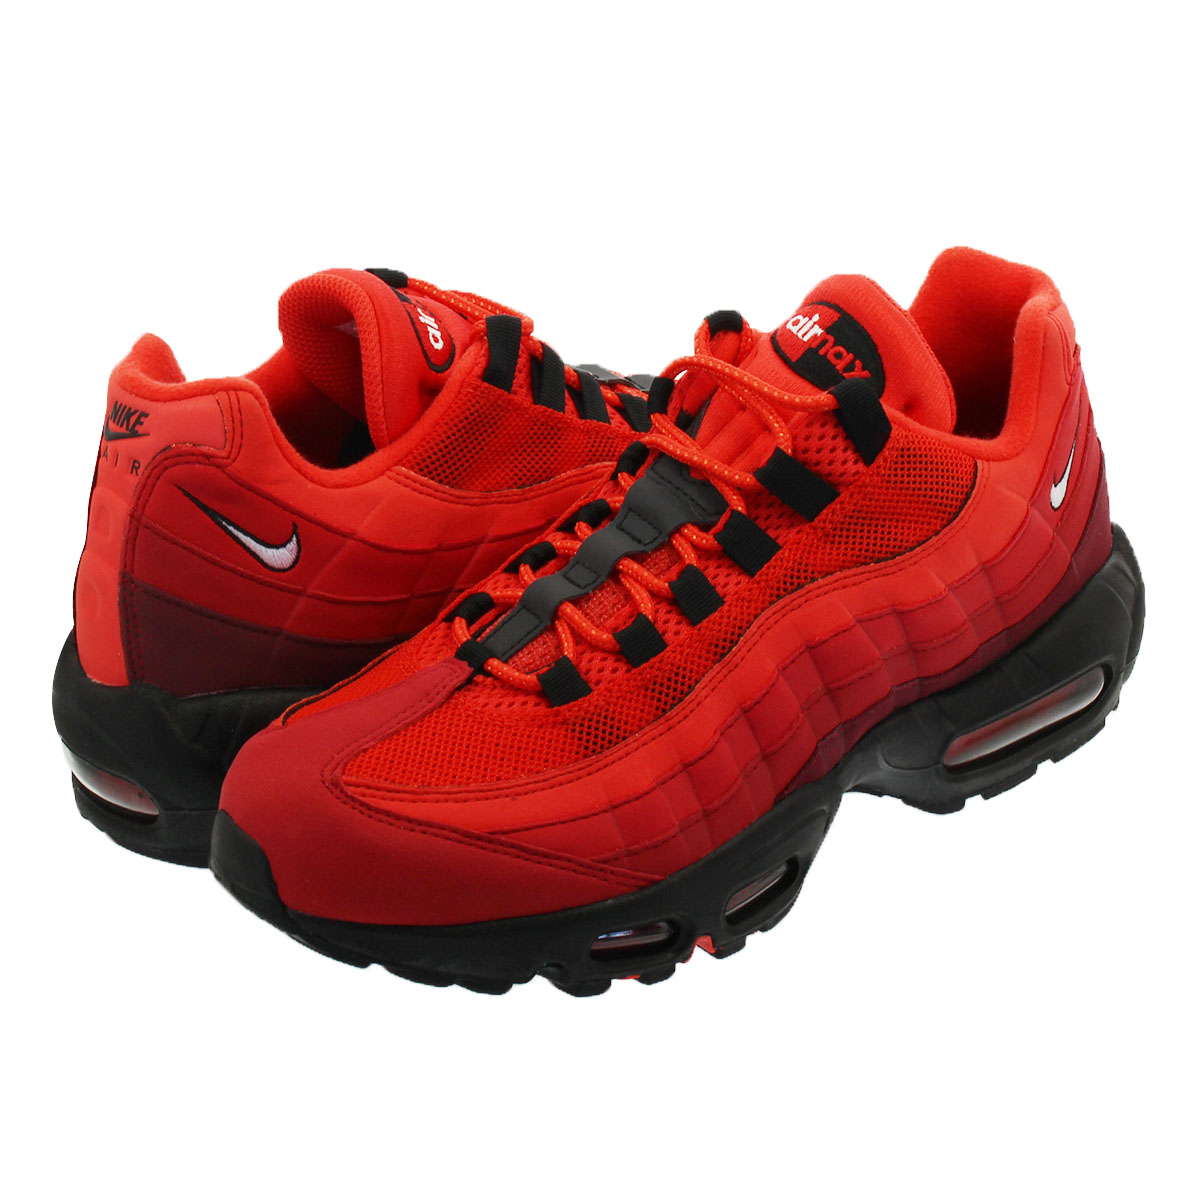 uk availability 1e683 68063 Categories. « All Categories · Shoes · Men s Shoes · Sneakers · NIKE AIR  MAX 95 ...